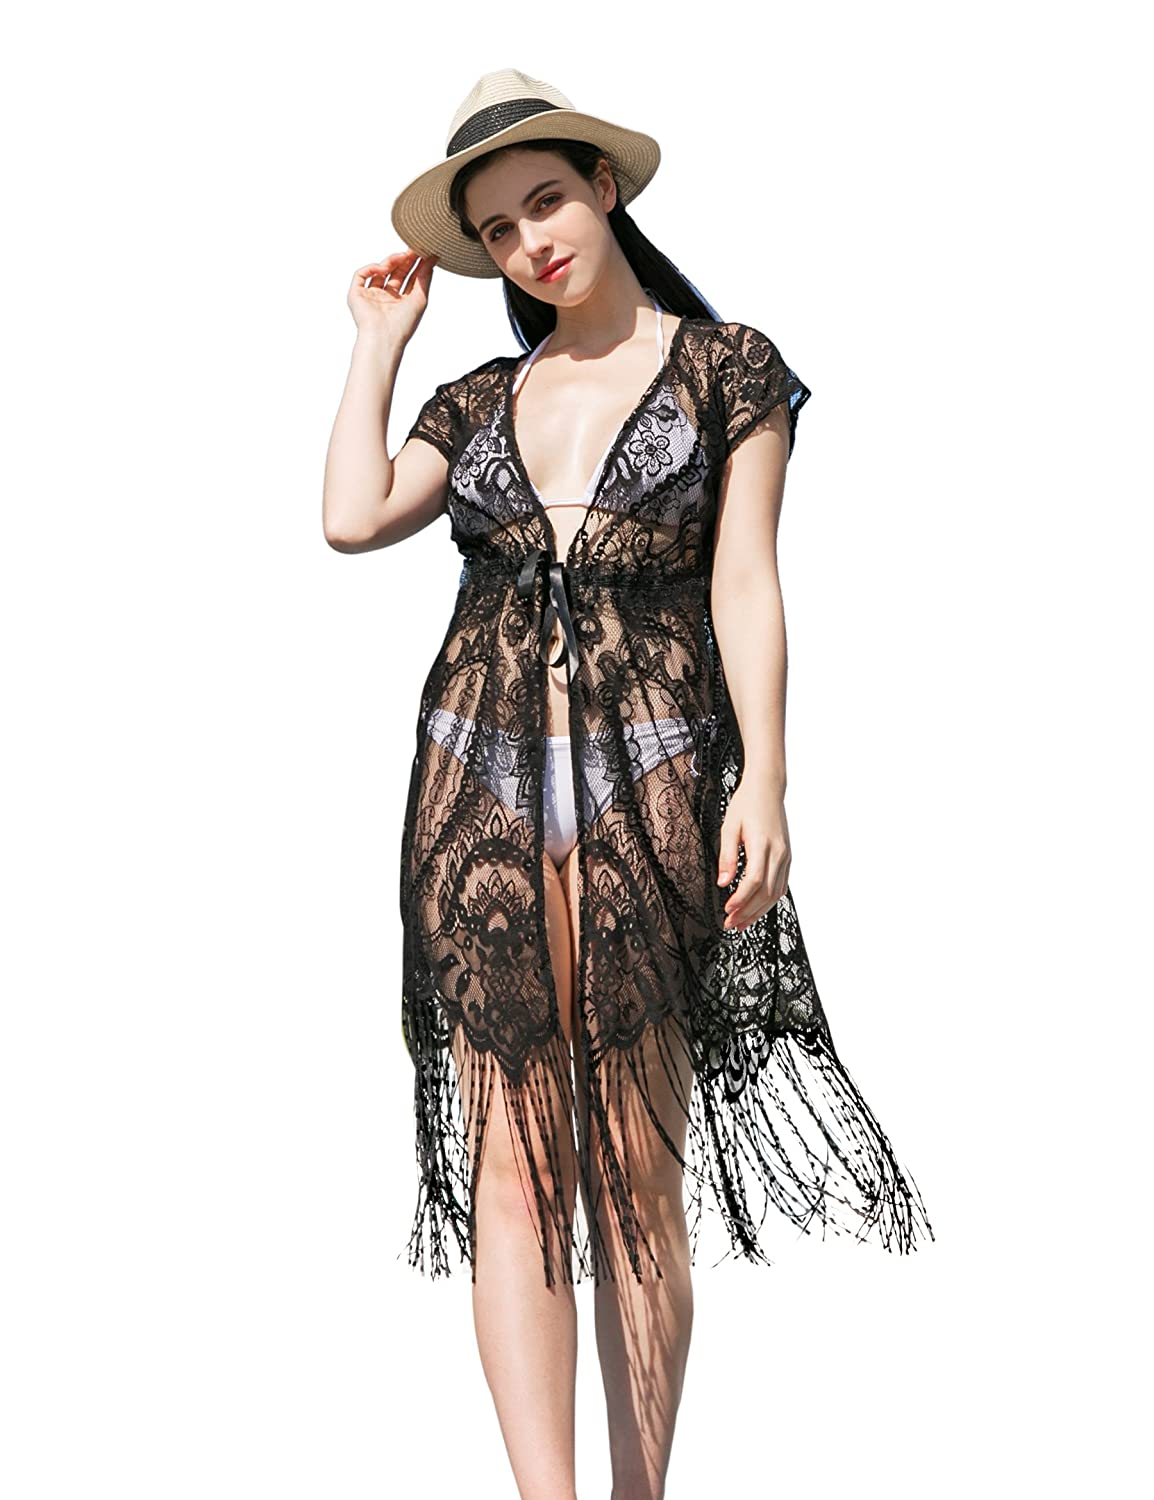 d5408675ad Women s Lace Floral Cover Up - Summer Sexy Long Maxi Beach Wear Bathing  Suit Swimsuit for Bikini Soul Young(One Size